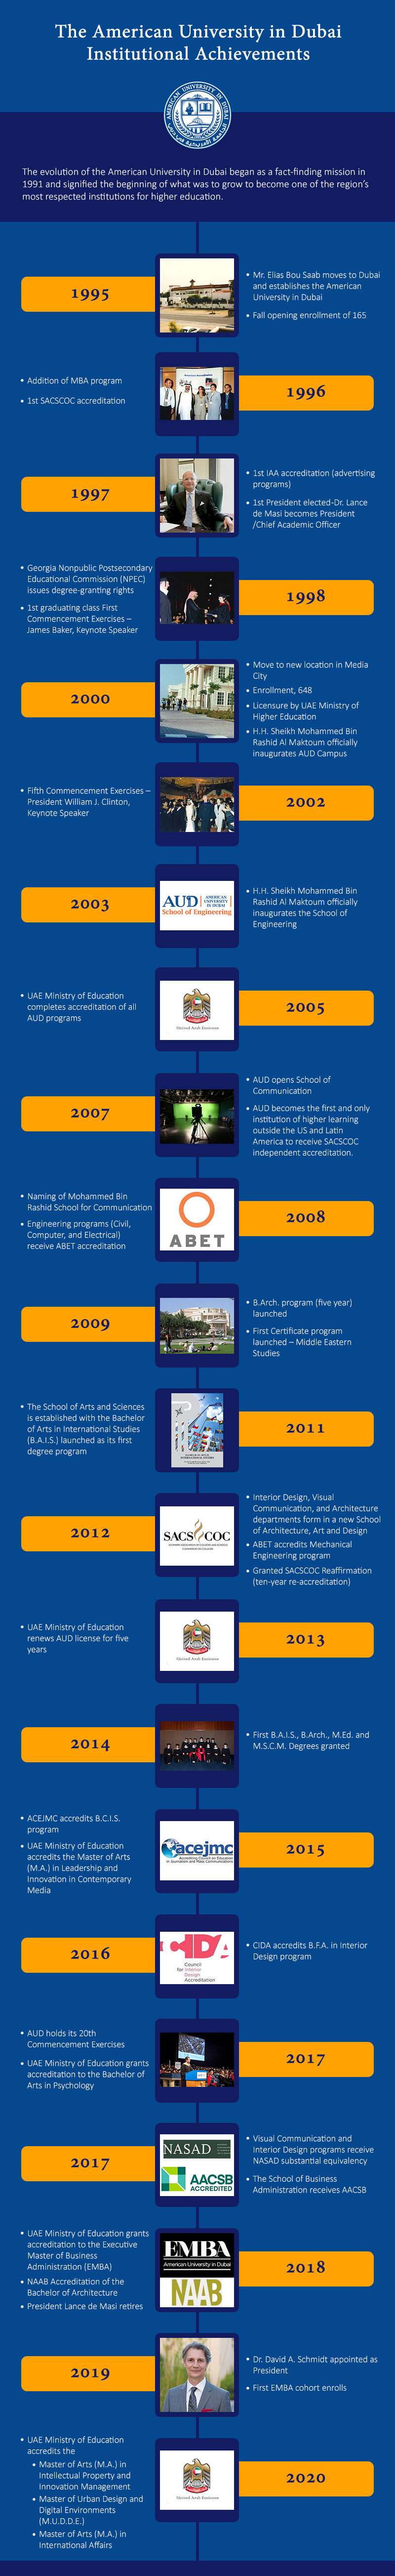 AUD Institutional Achievements Timeline